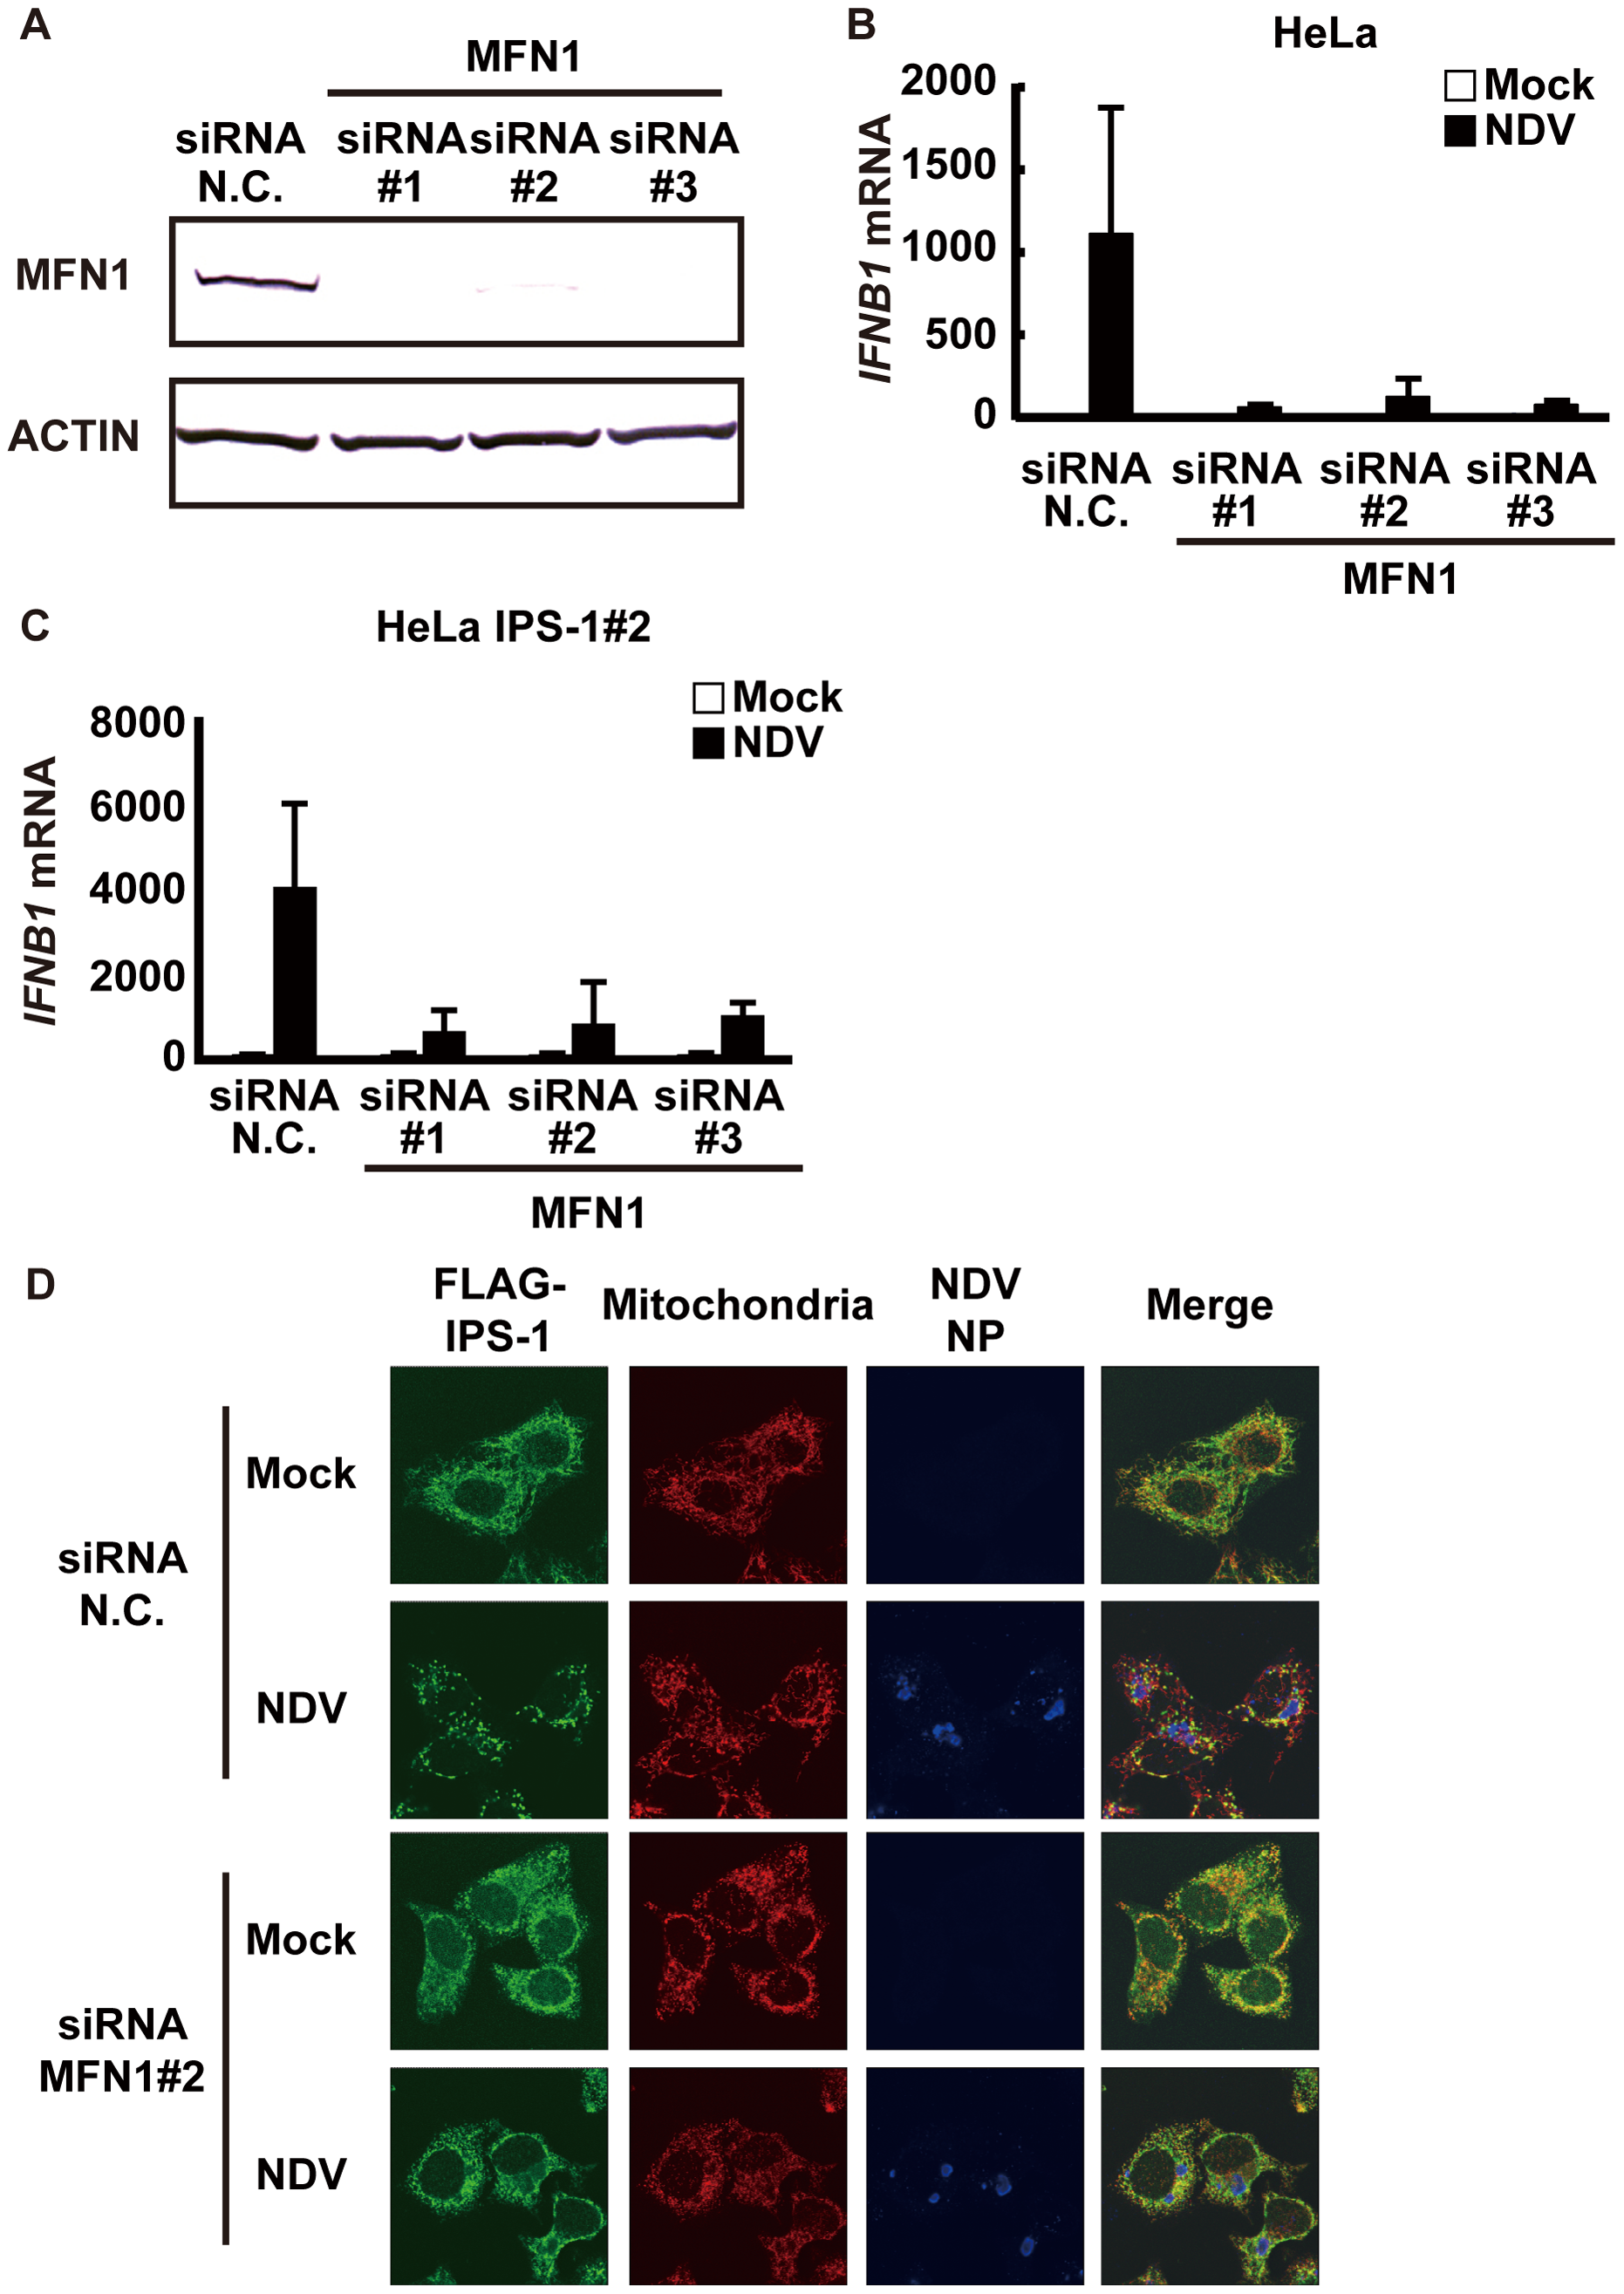 Knockdown of MFN1 inhibits the redistribution of IPS-1 induced by NDV infection.